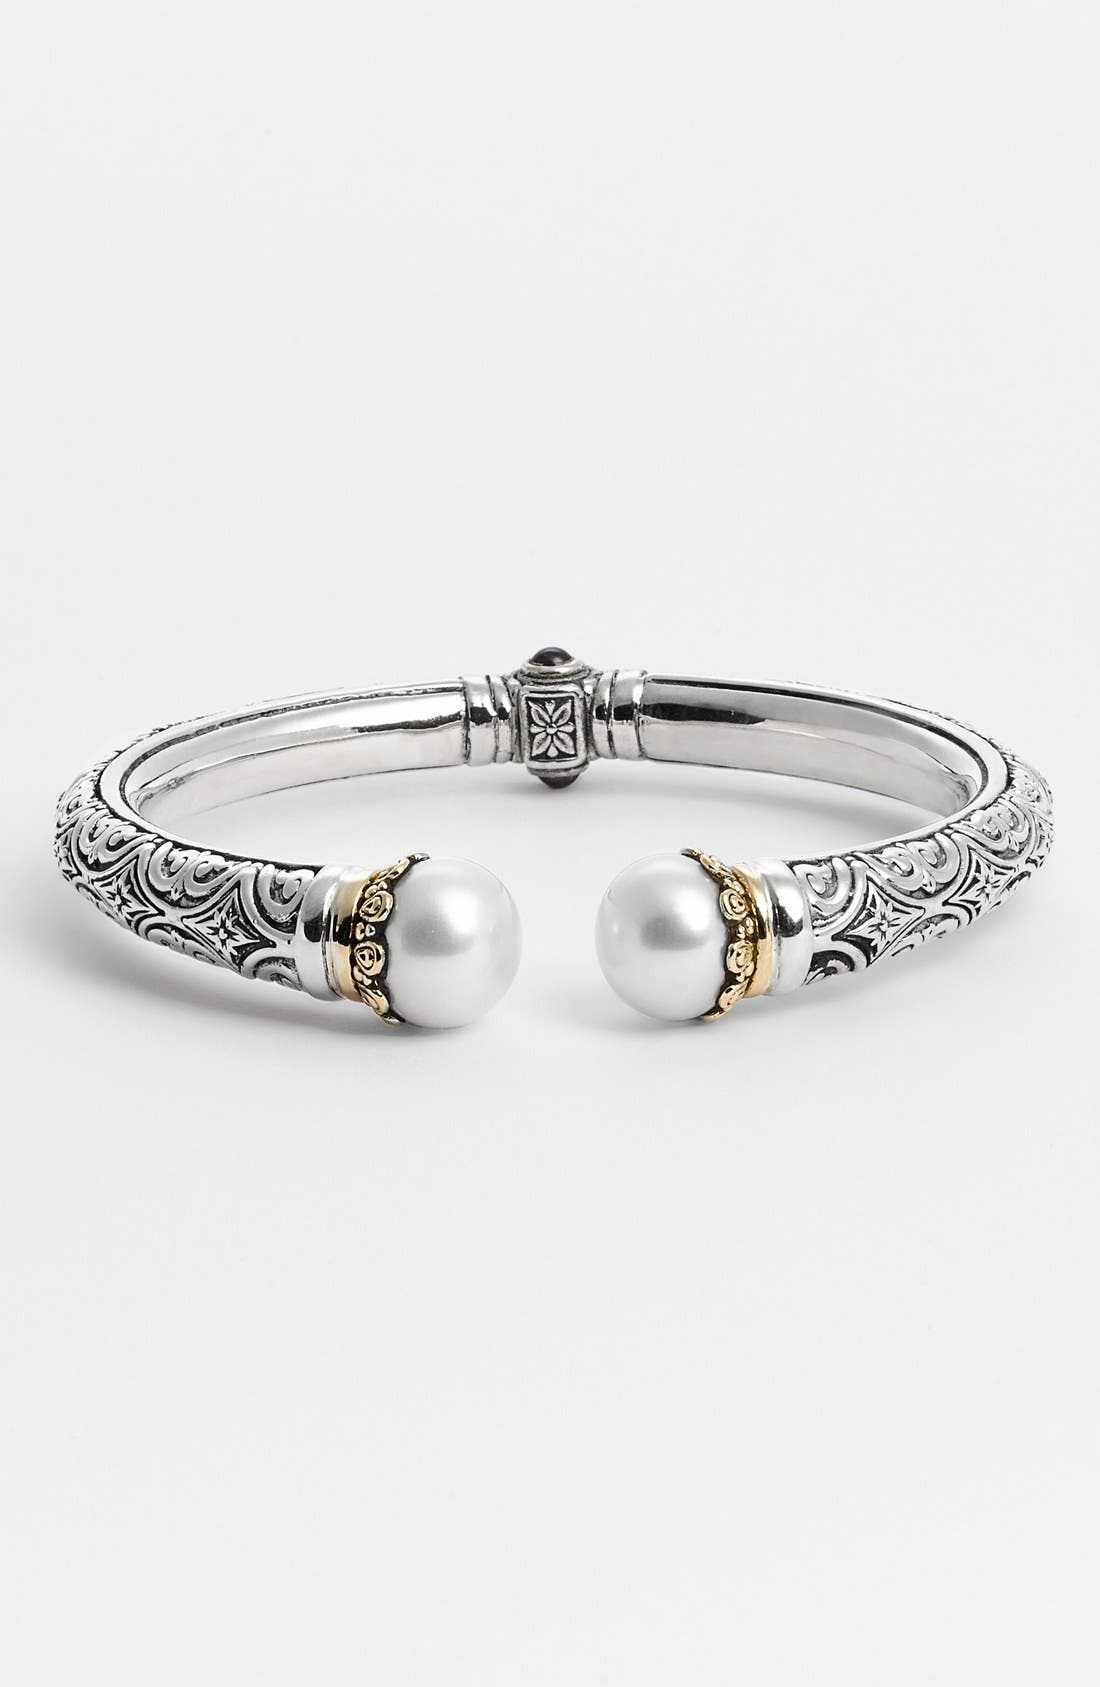 'Hermione' Hinged Cuff,                         Main,                         color, Silver/ Gold